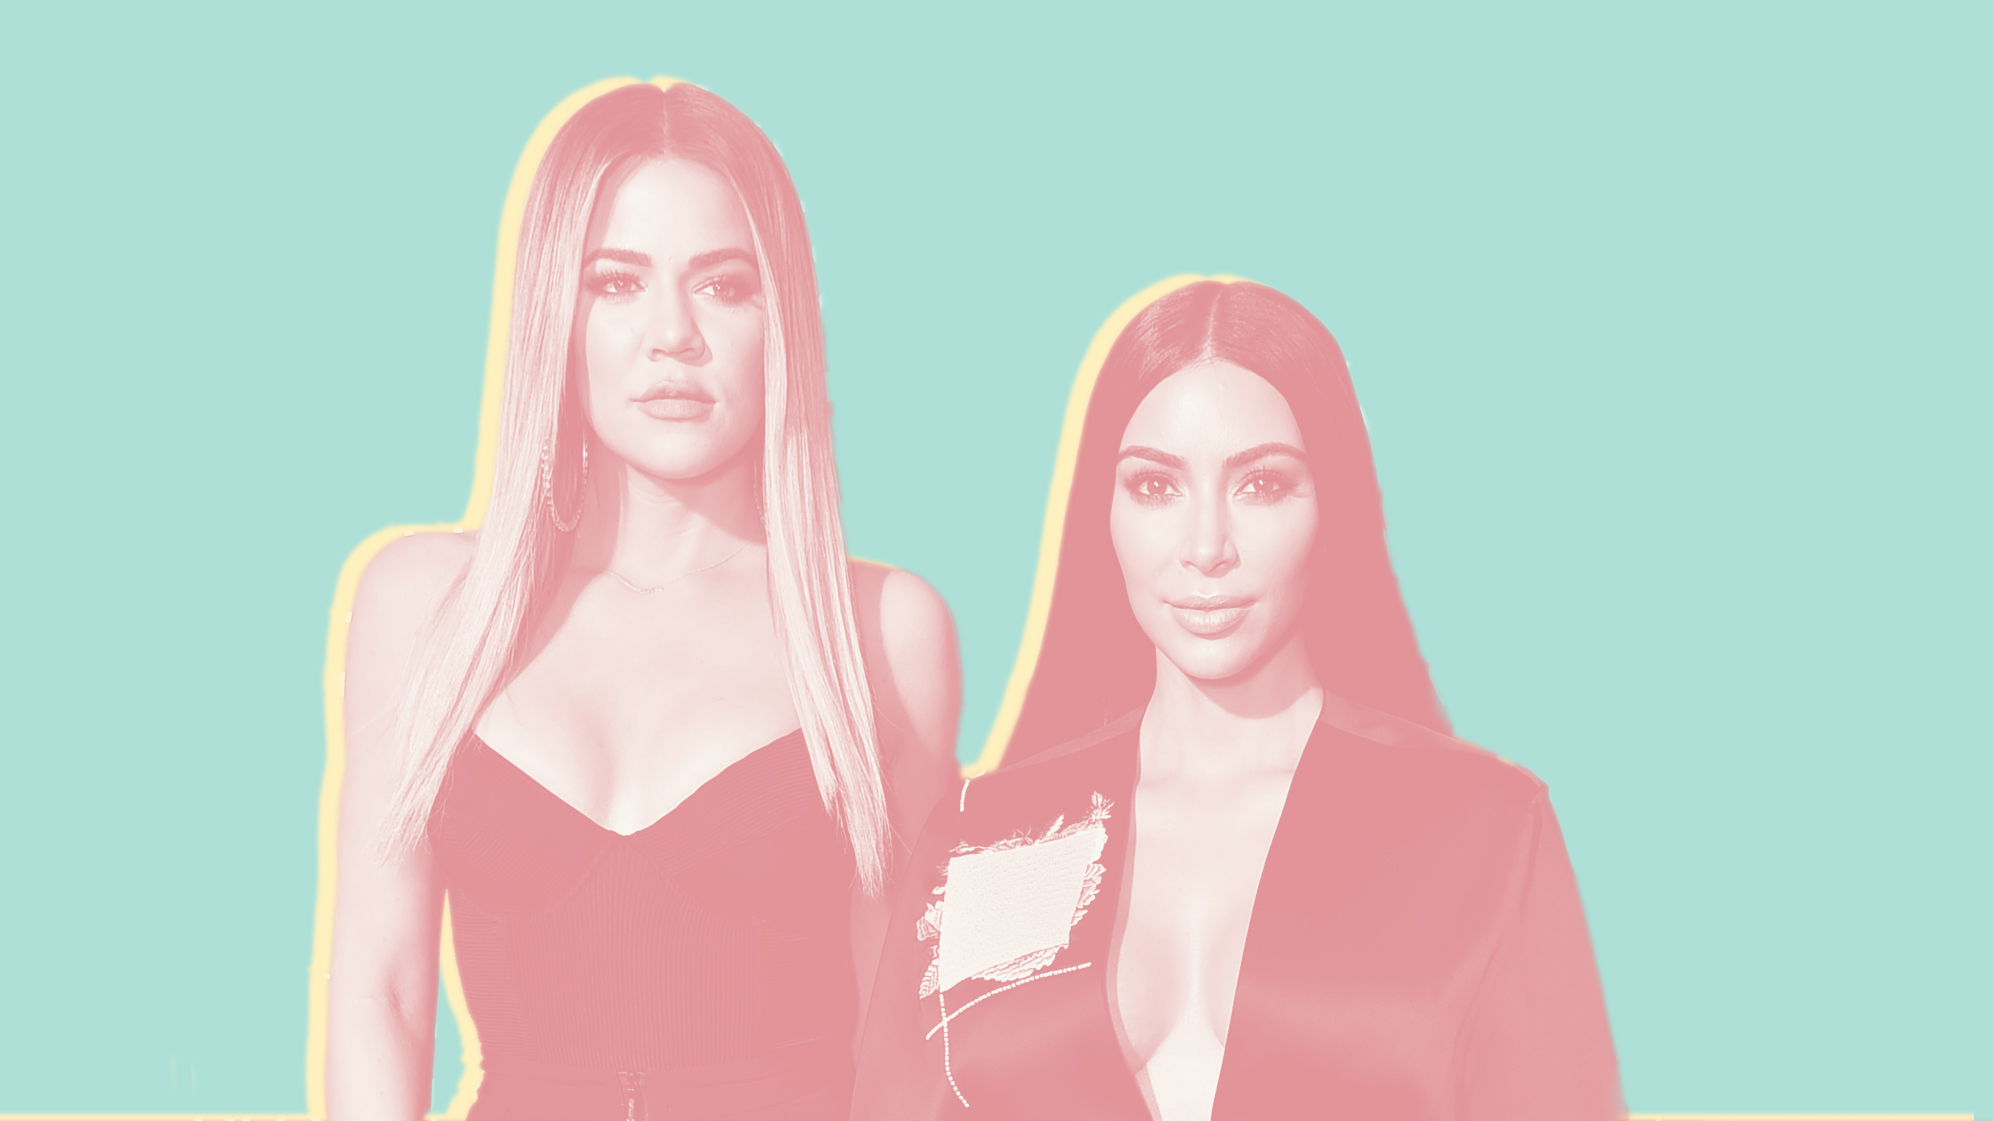 The Kardashian Sisters FINALLY Respond After Being Slammed For Dangerous Weight Loss Promotion